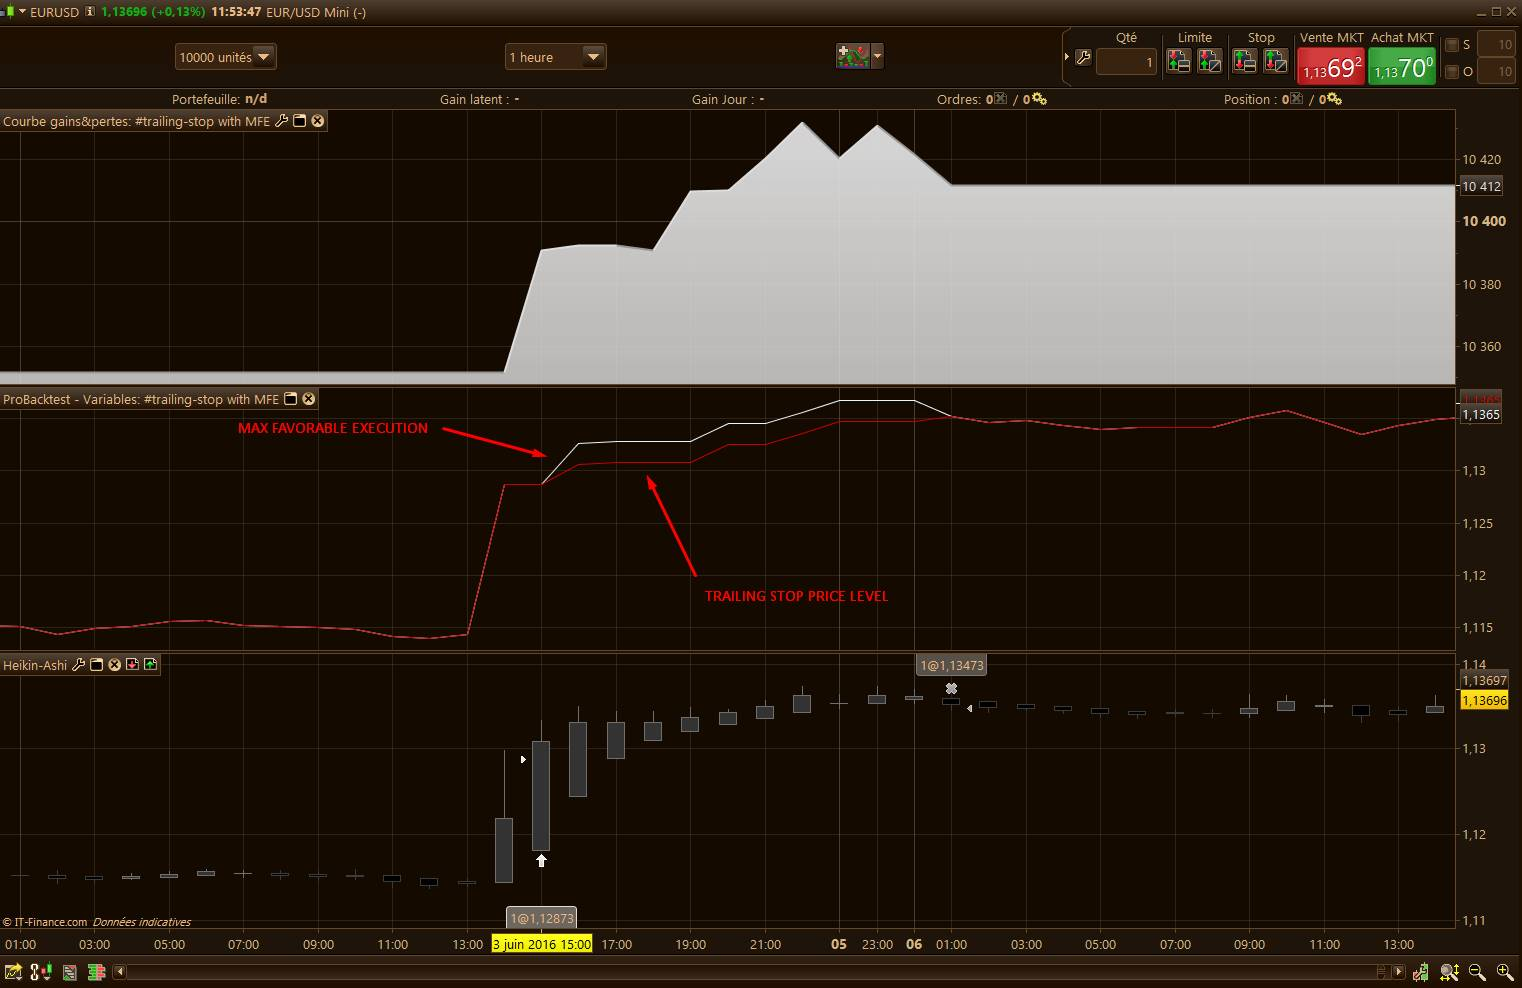 Trailing stop with the Max Favorable Excursion (MFE)